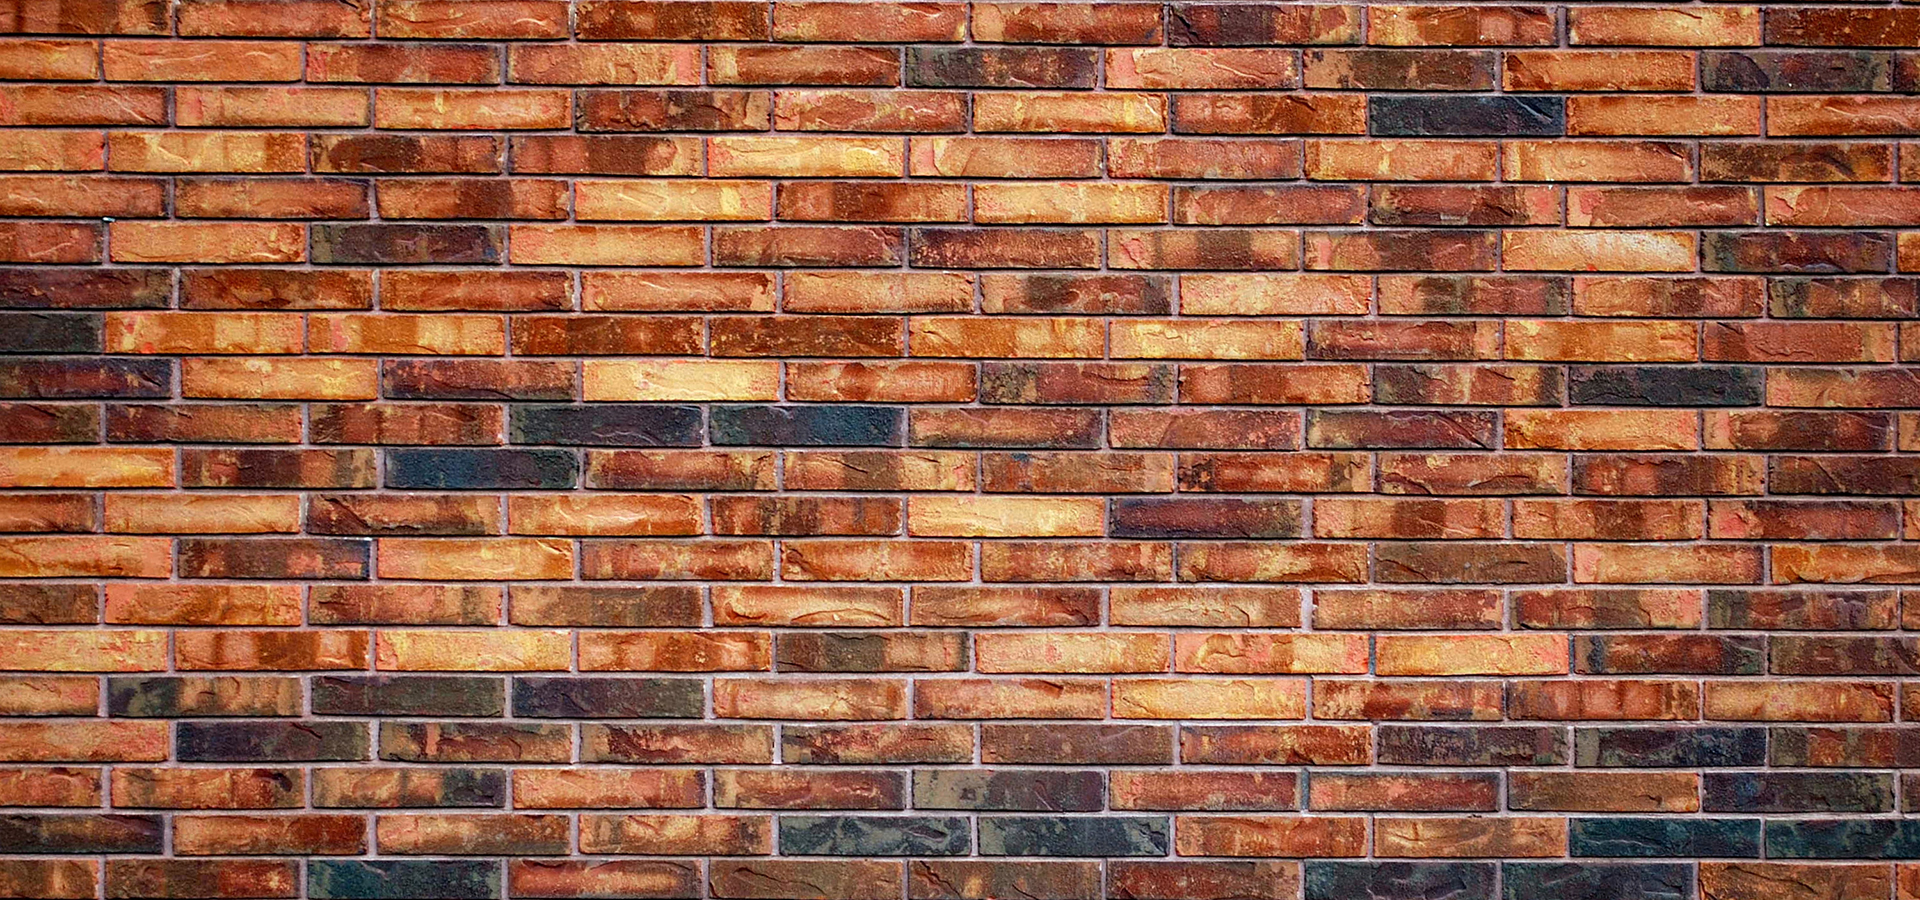 red brick wall background  red  poster  banner background image for free download